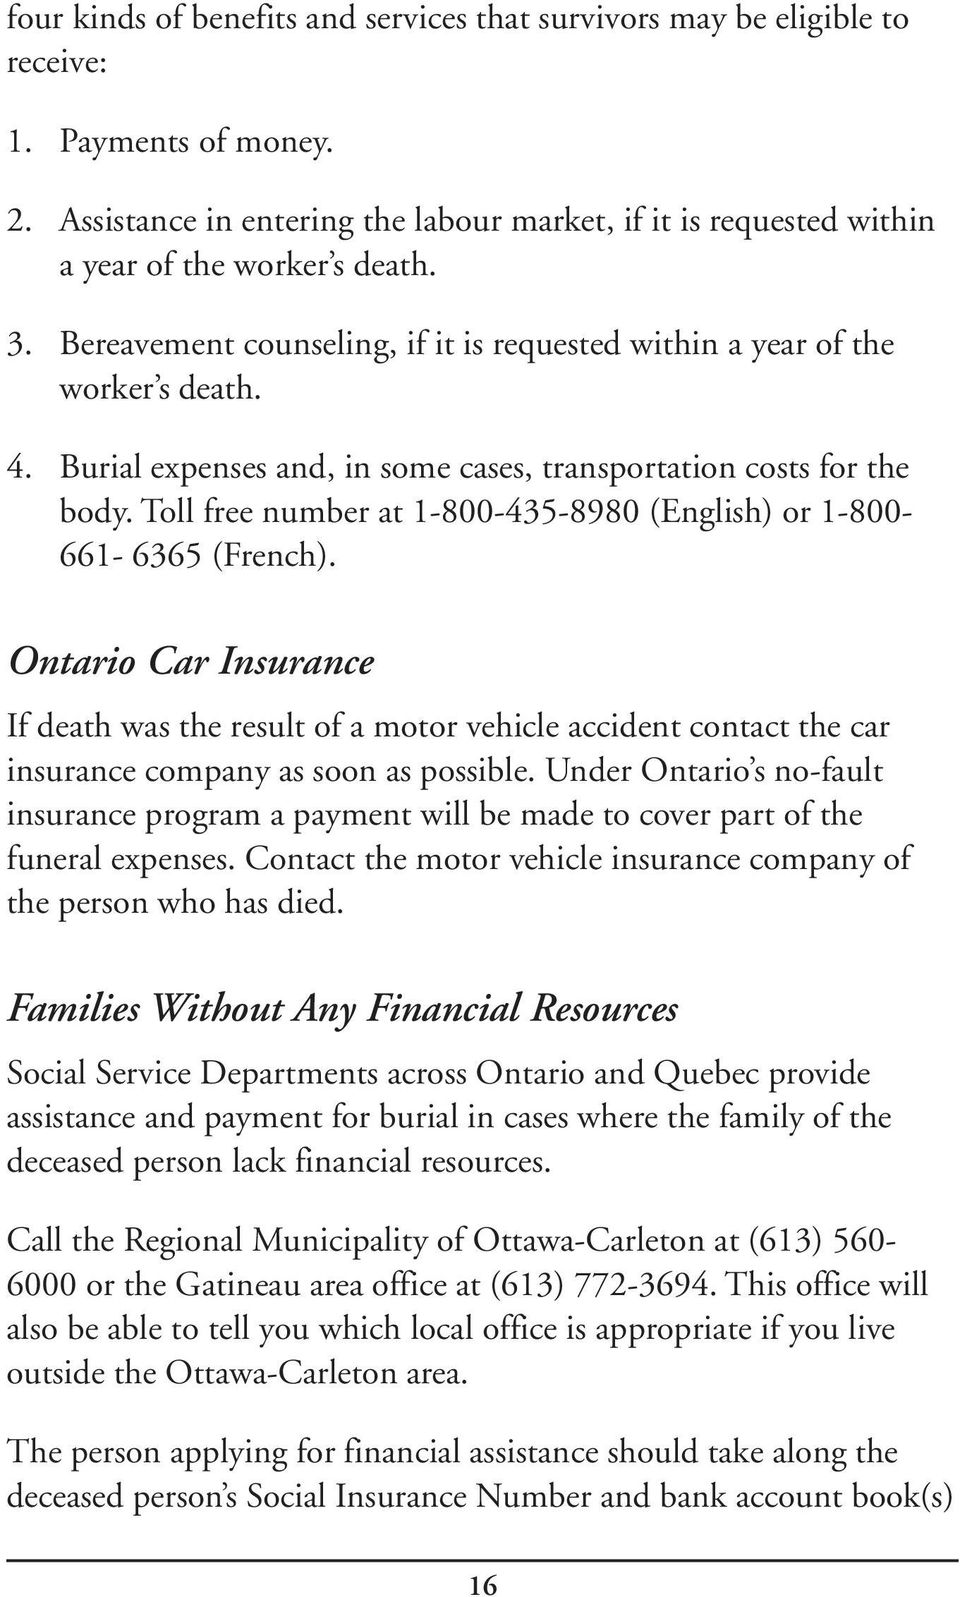 Burial expenses and, in some cases, transportation costs for the body. Toll free number at 1-800-435-8980 (English) or 1-800- 661-6365 (French).